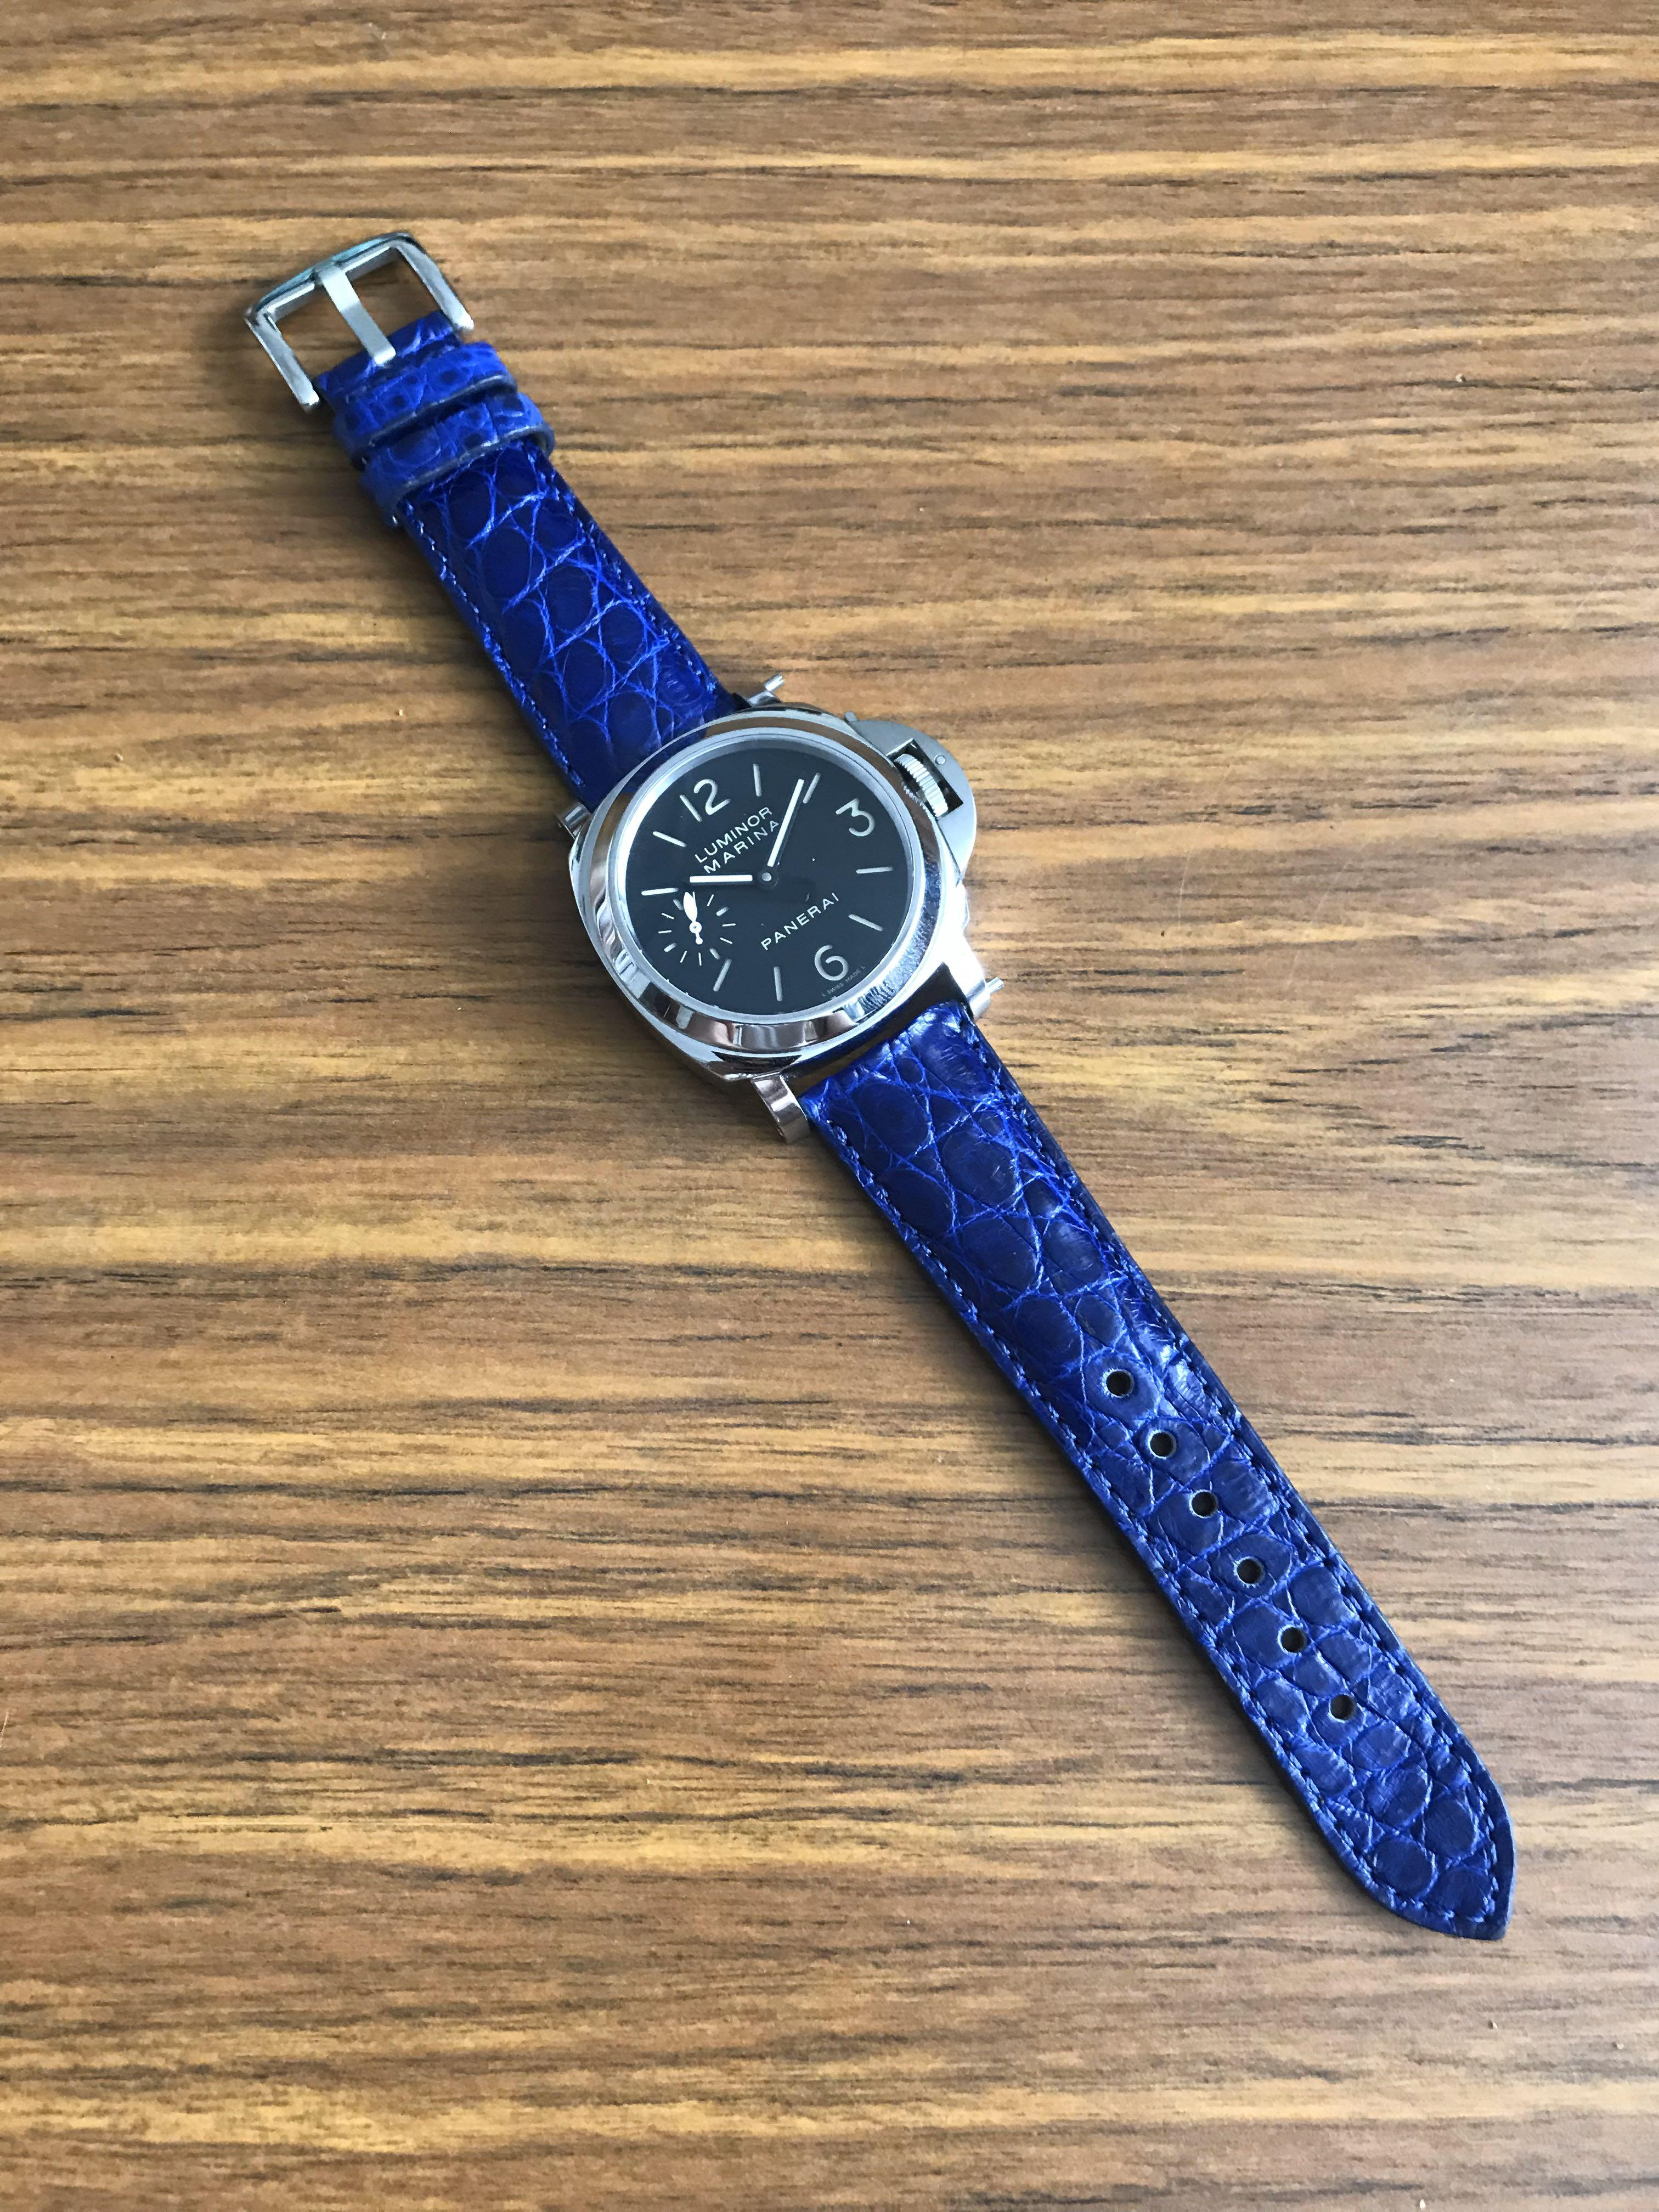 24mm/20mm Authentic Royal Blue Crocodile Alligator Leather Watch Strap (unique grains) (24mm at lug, 20mm at buckle) (seen on a PAM 111)